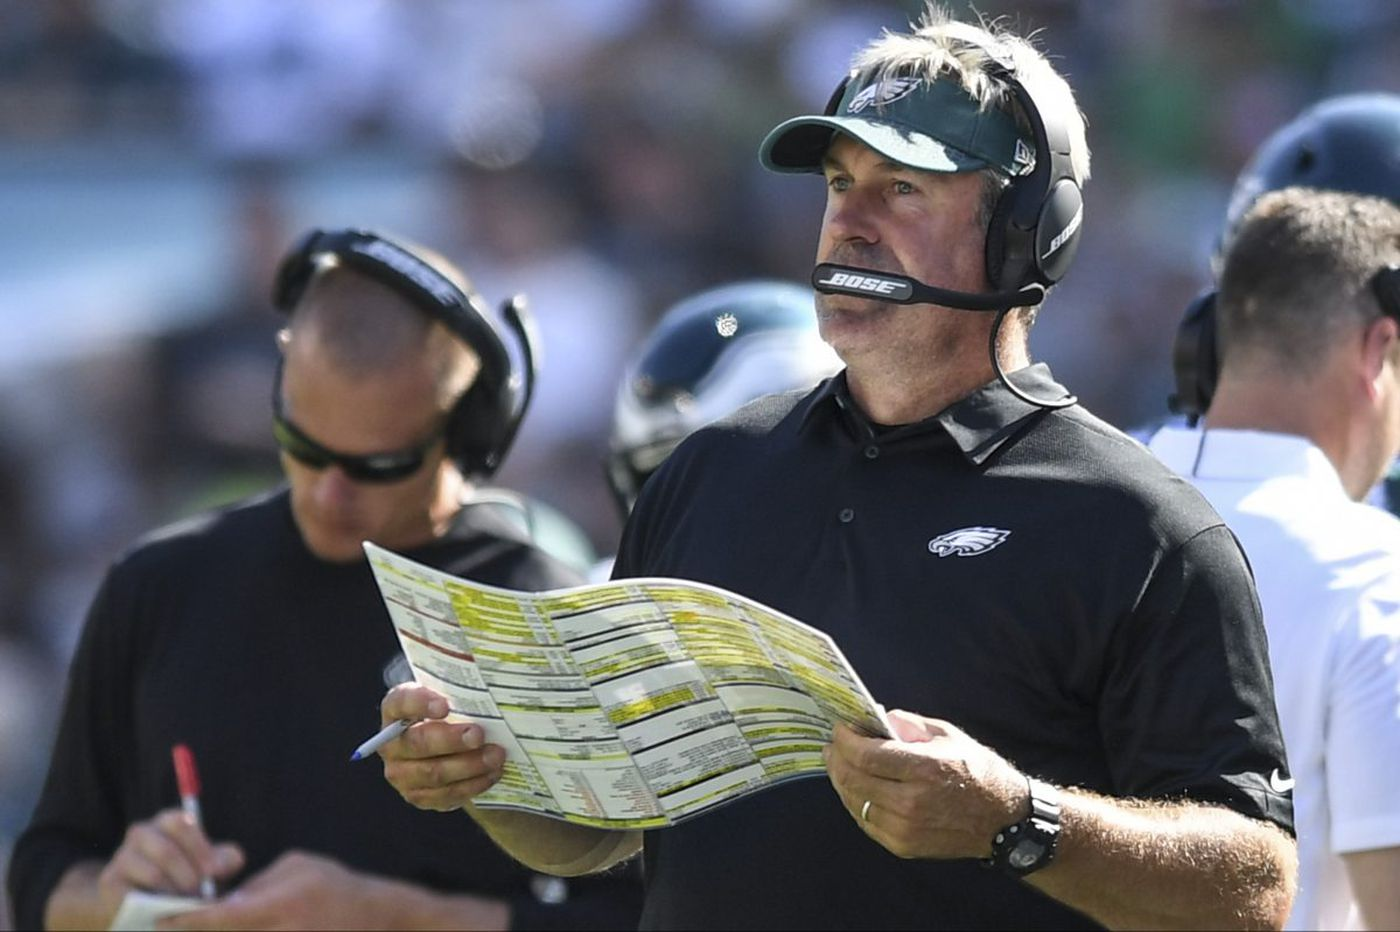 Doug Pederson's fourth-down aggressiveness has Lurie's support | Jeff McLane